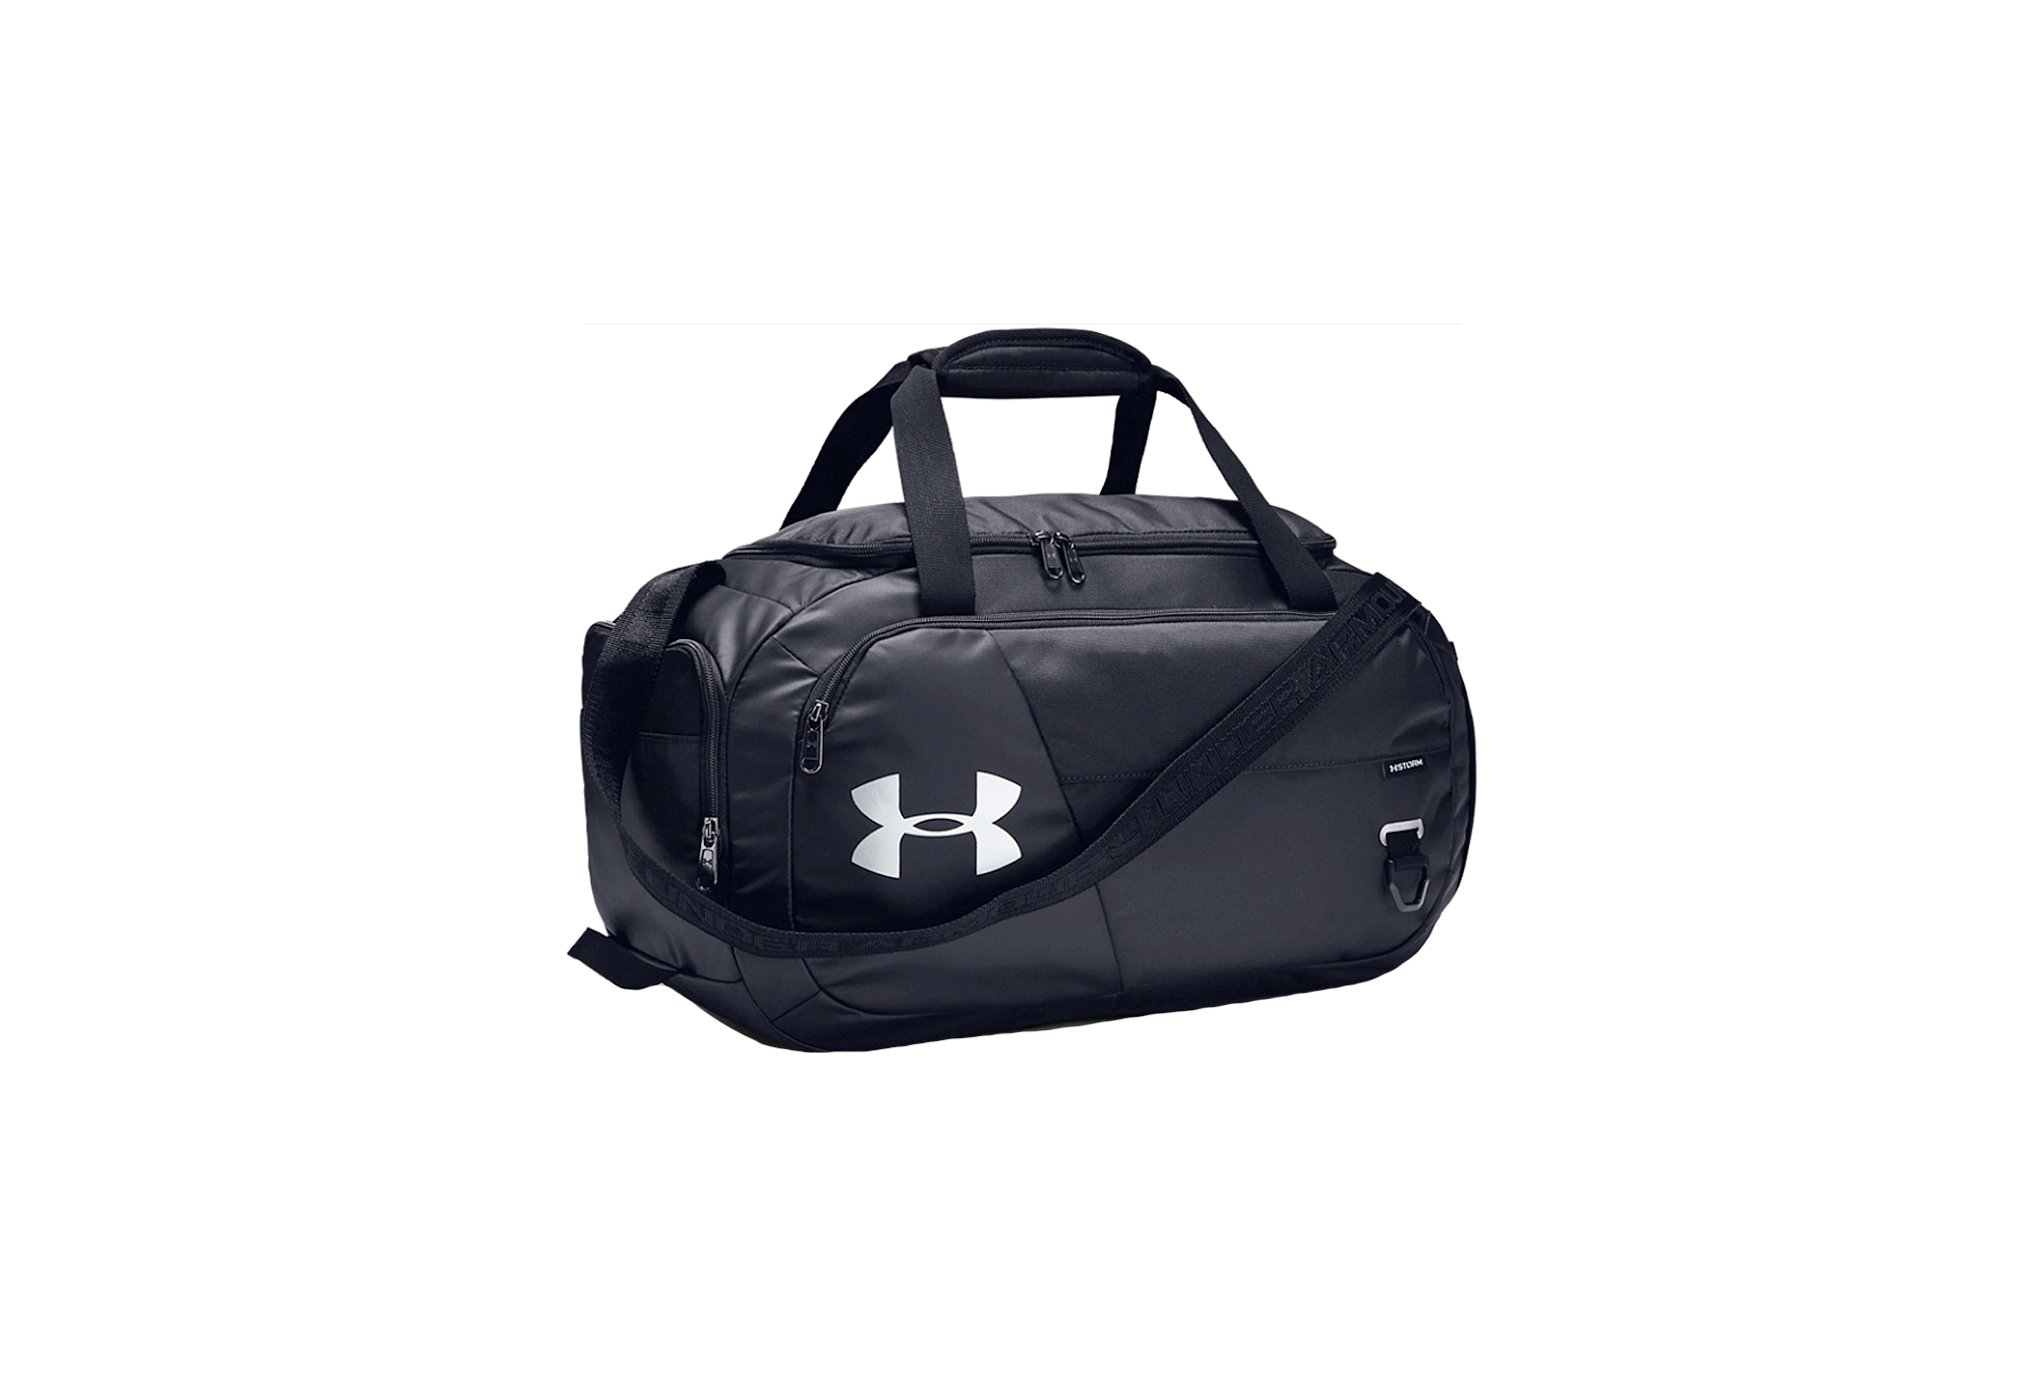 Under Armour Undeniable Duffle 4.0 - XS Sac de sport